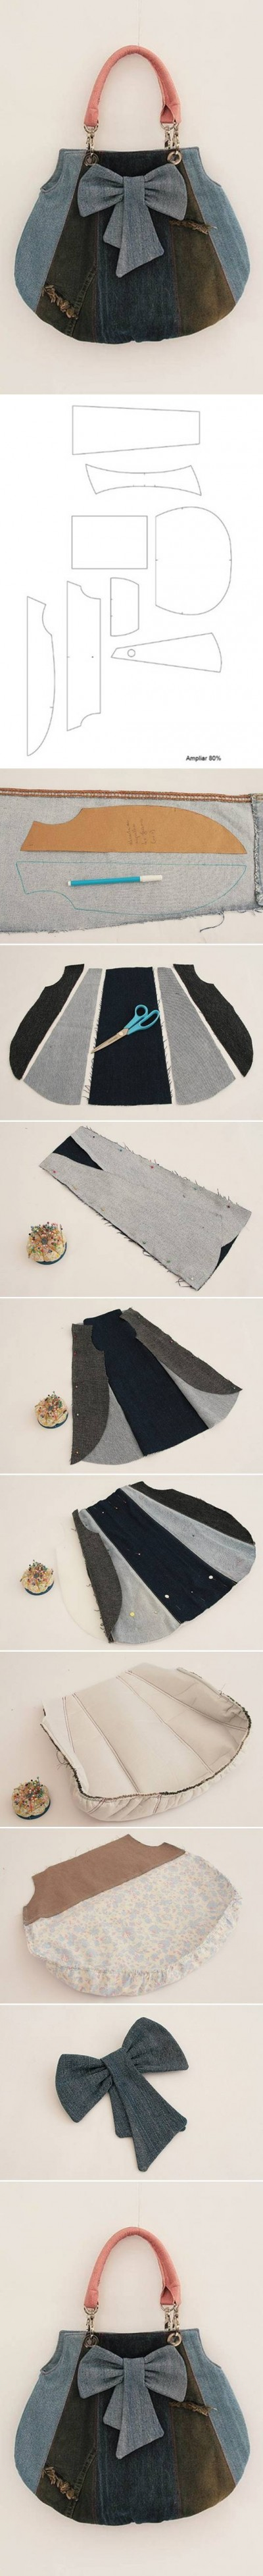 How to make Old Jeans Fashion Bag step by step DIY tutorial instructions